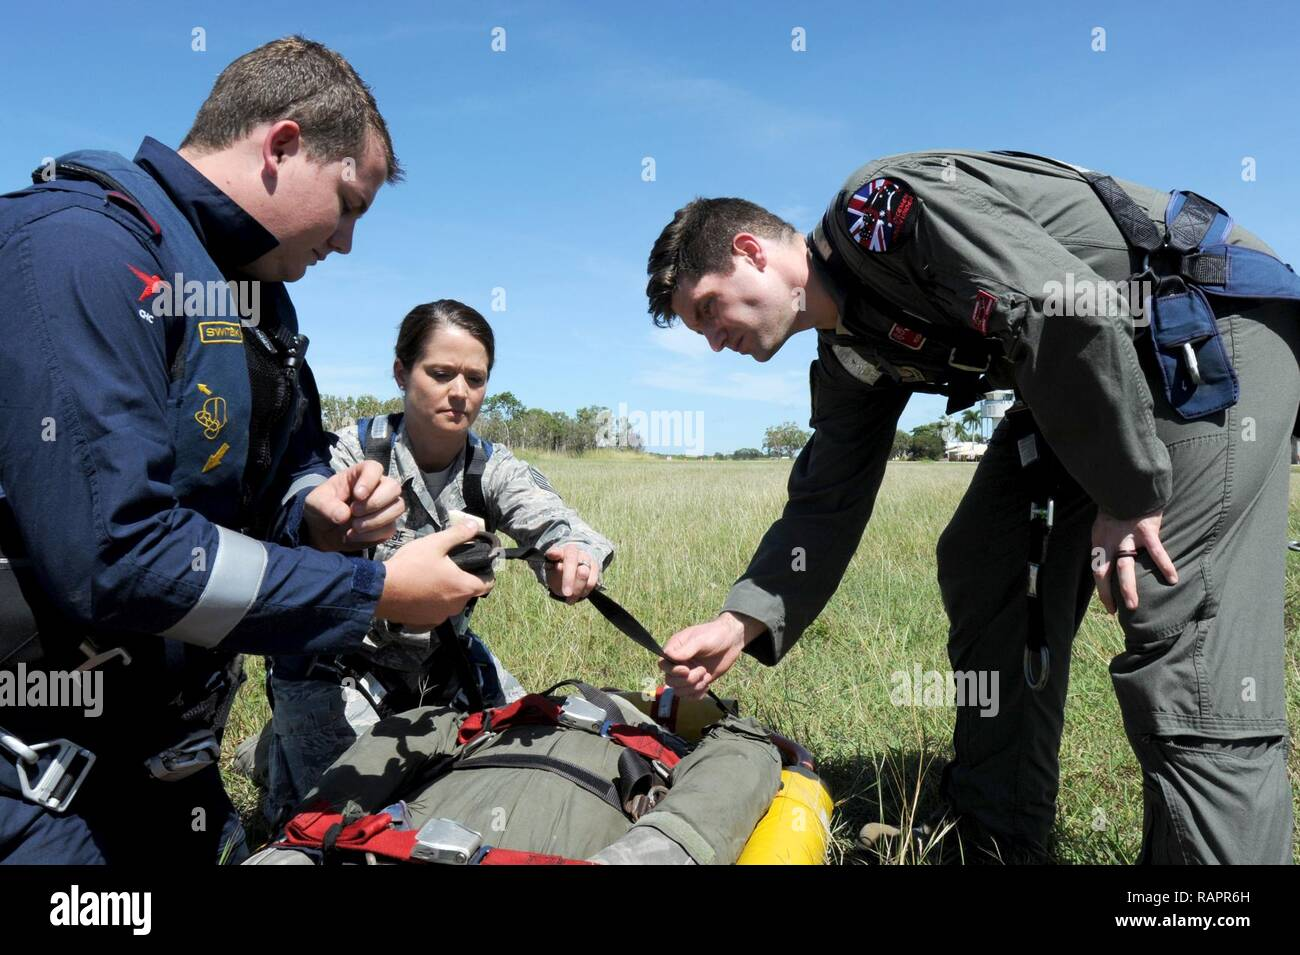 Rescue Crewman Kurt Pride, Royal Australian Air Force Base Tindal helicopter unit member, U.S. Air Force Capt. Paul Ward, 90th Fighter Squadron Flight Doctor, and Tech. Sgt. Layla Dispense, 90th FS Independent Duty Medical Technician, prepare a dummy for transport on a stretcher during helicopter rescue training at RAAF Base Tindal, Feb. 28, 2017. Ward and Dispense are deployed to Australia as part of the Enhanced Air Cooperation, a joint training and exercise initiative under the Force Posture Agreement between the U.S. and Australian governments. - Stock Image